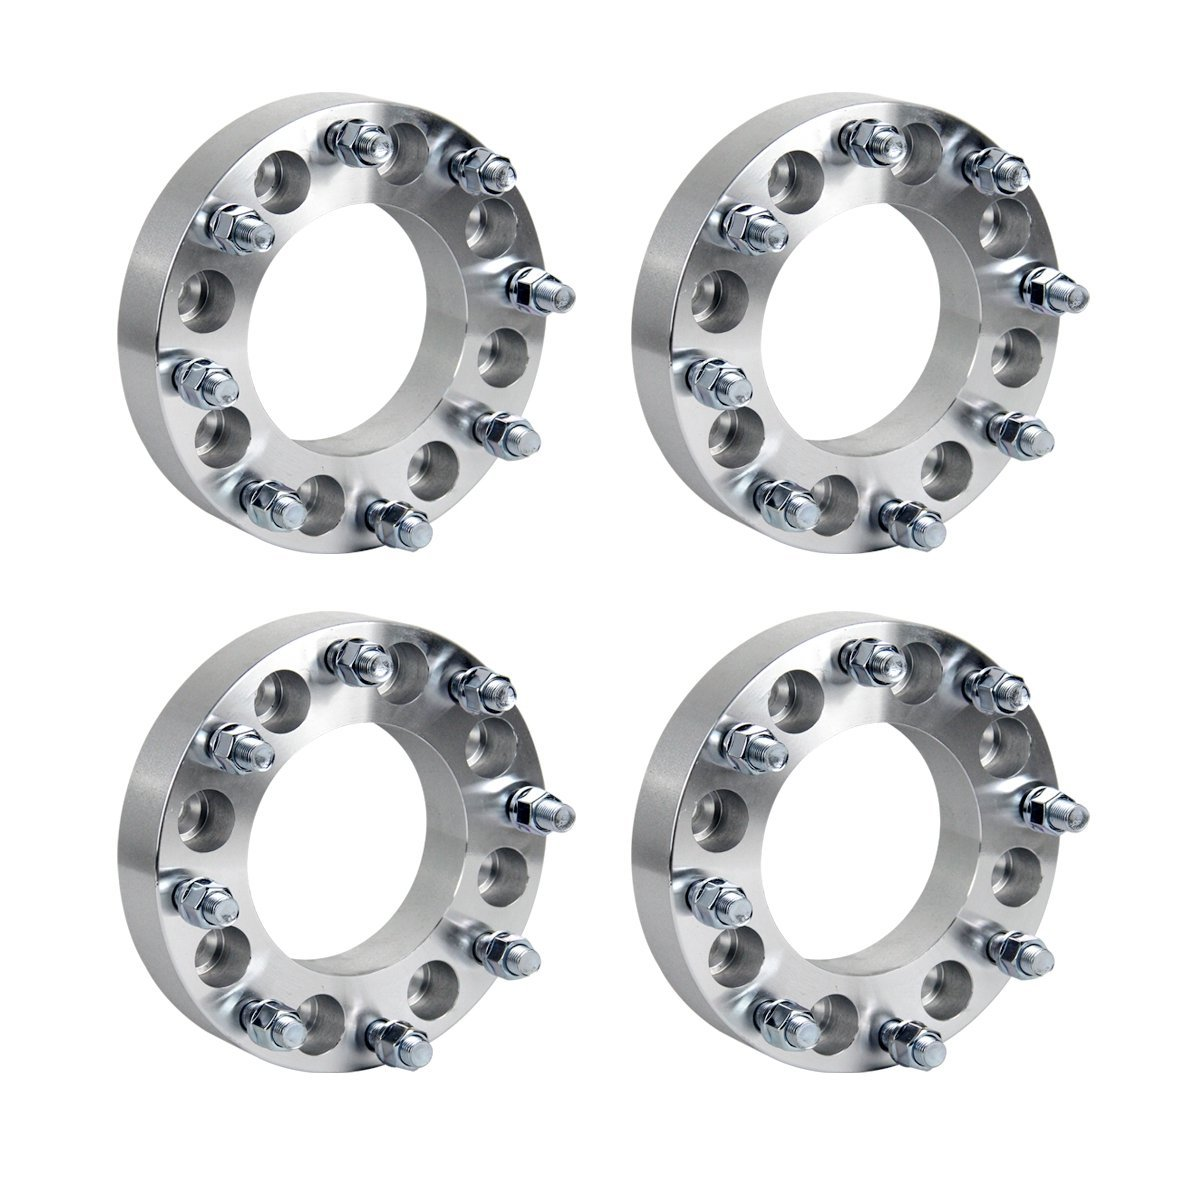 "GESS 4pcs 1.5"" 8x165.1 to 8x180 Wheel Adapters Chevy Silverado GMC Sierra Yukon Huer H1 H2 Spacers 14x1.5 (Arrive whithin 3-7 business days)"